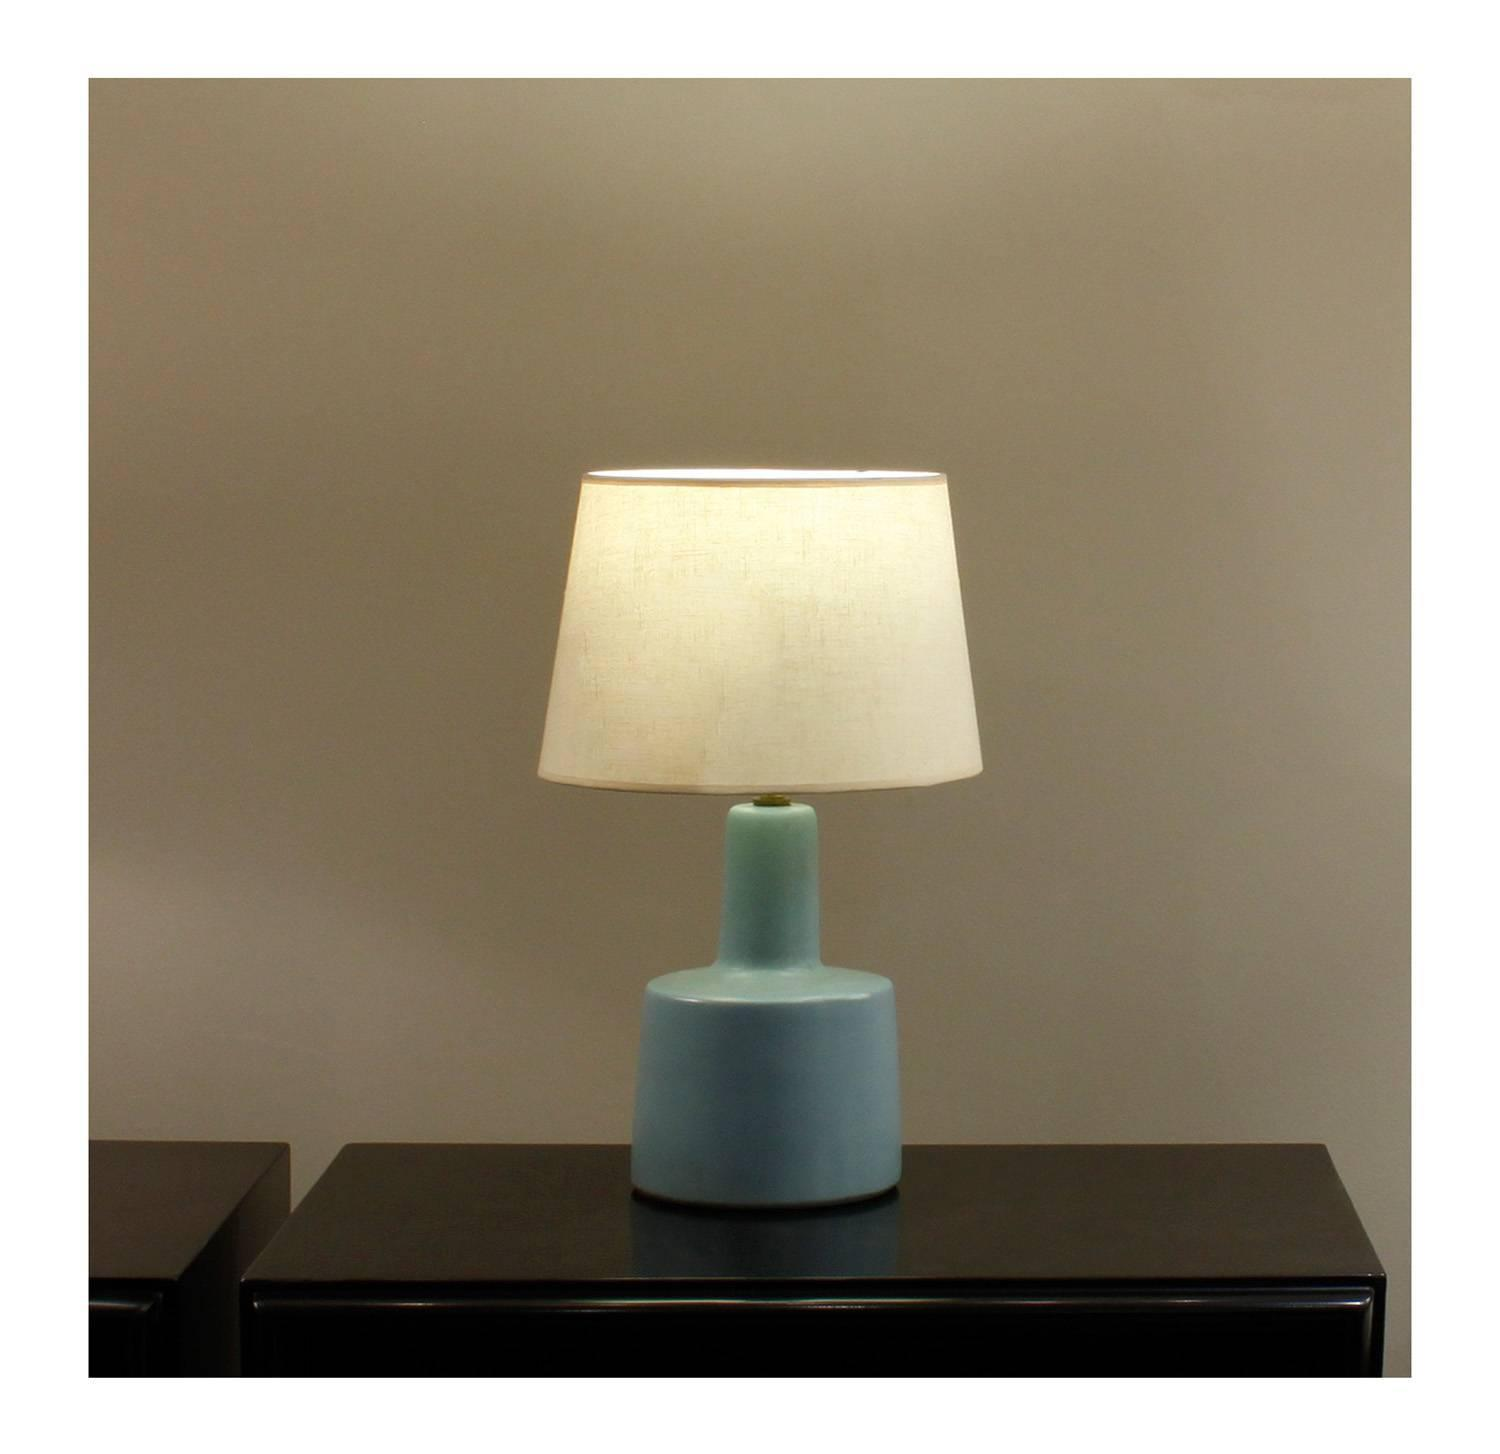 Gordon And Jane Martz Blue Ceramic Table Lamp, 1960s At 1stdibs